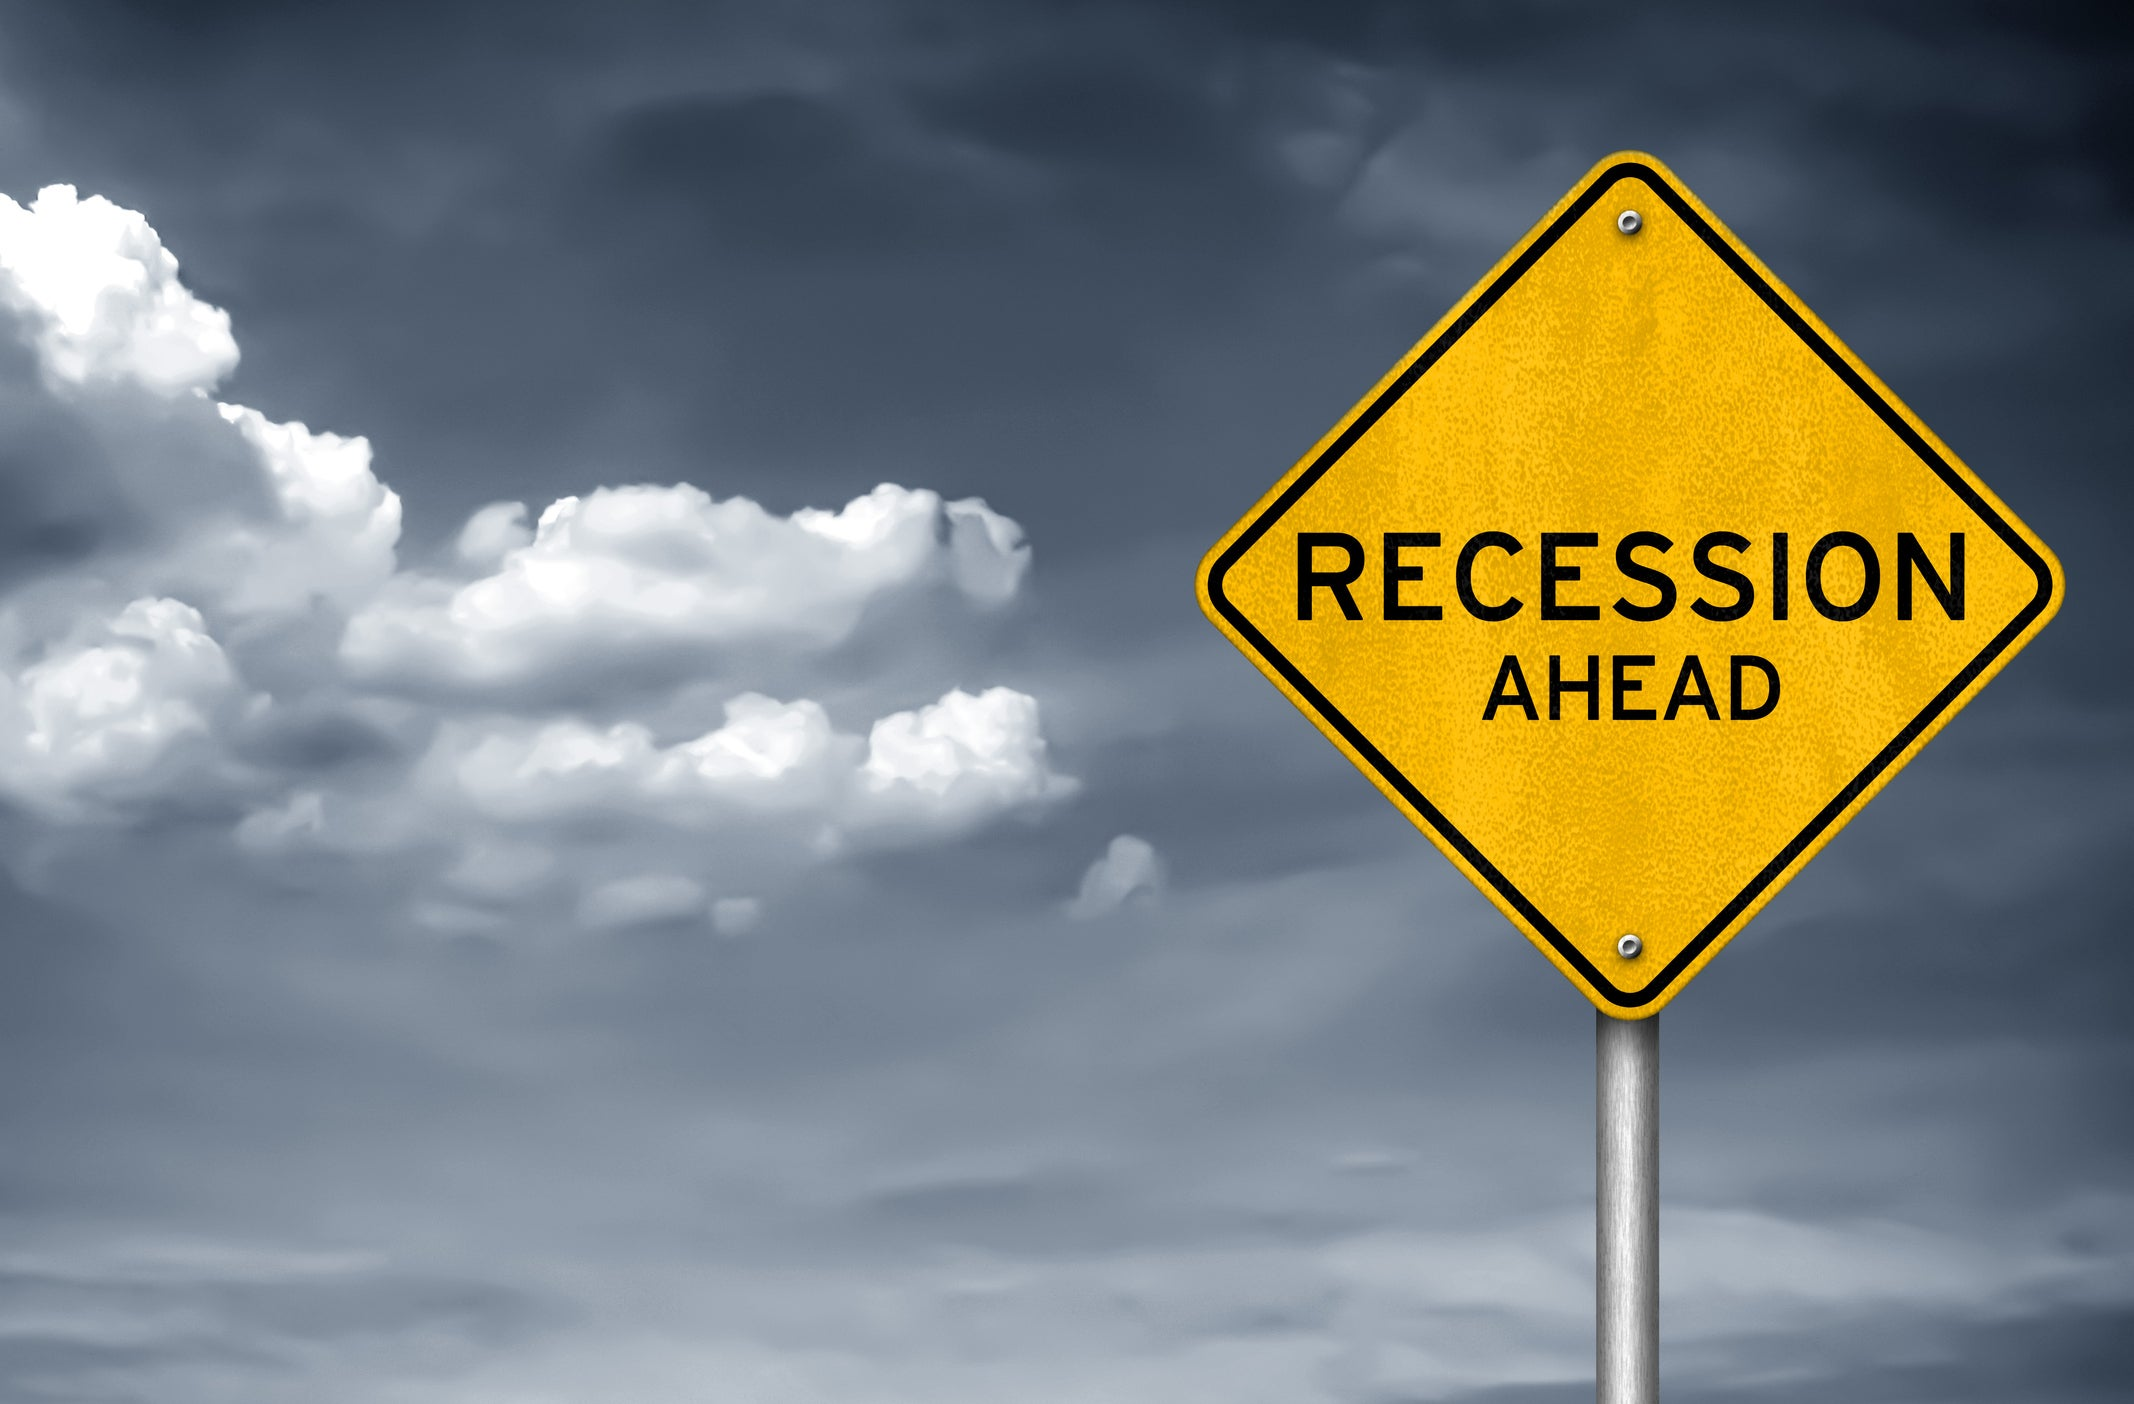 Image of article '2 Top Pot Stocks to Buy in a Recession'